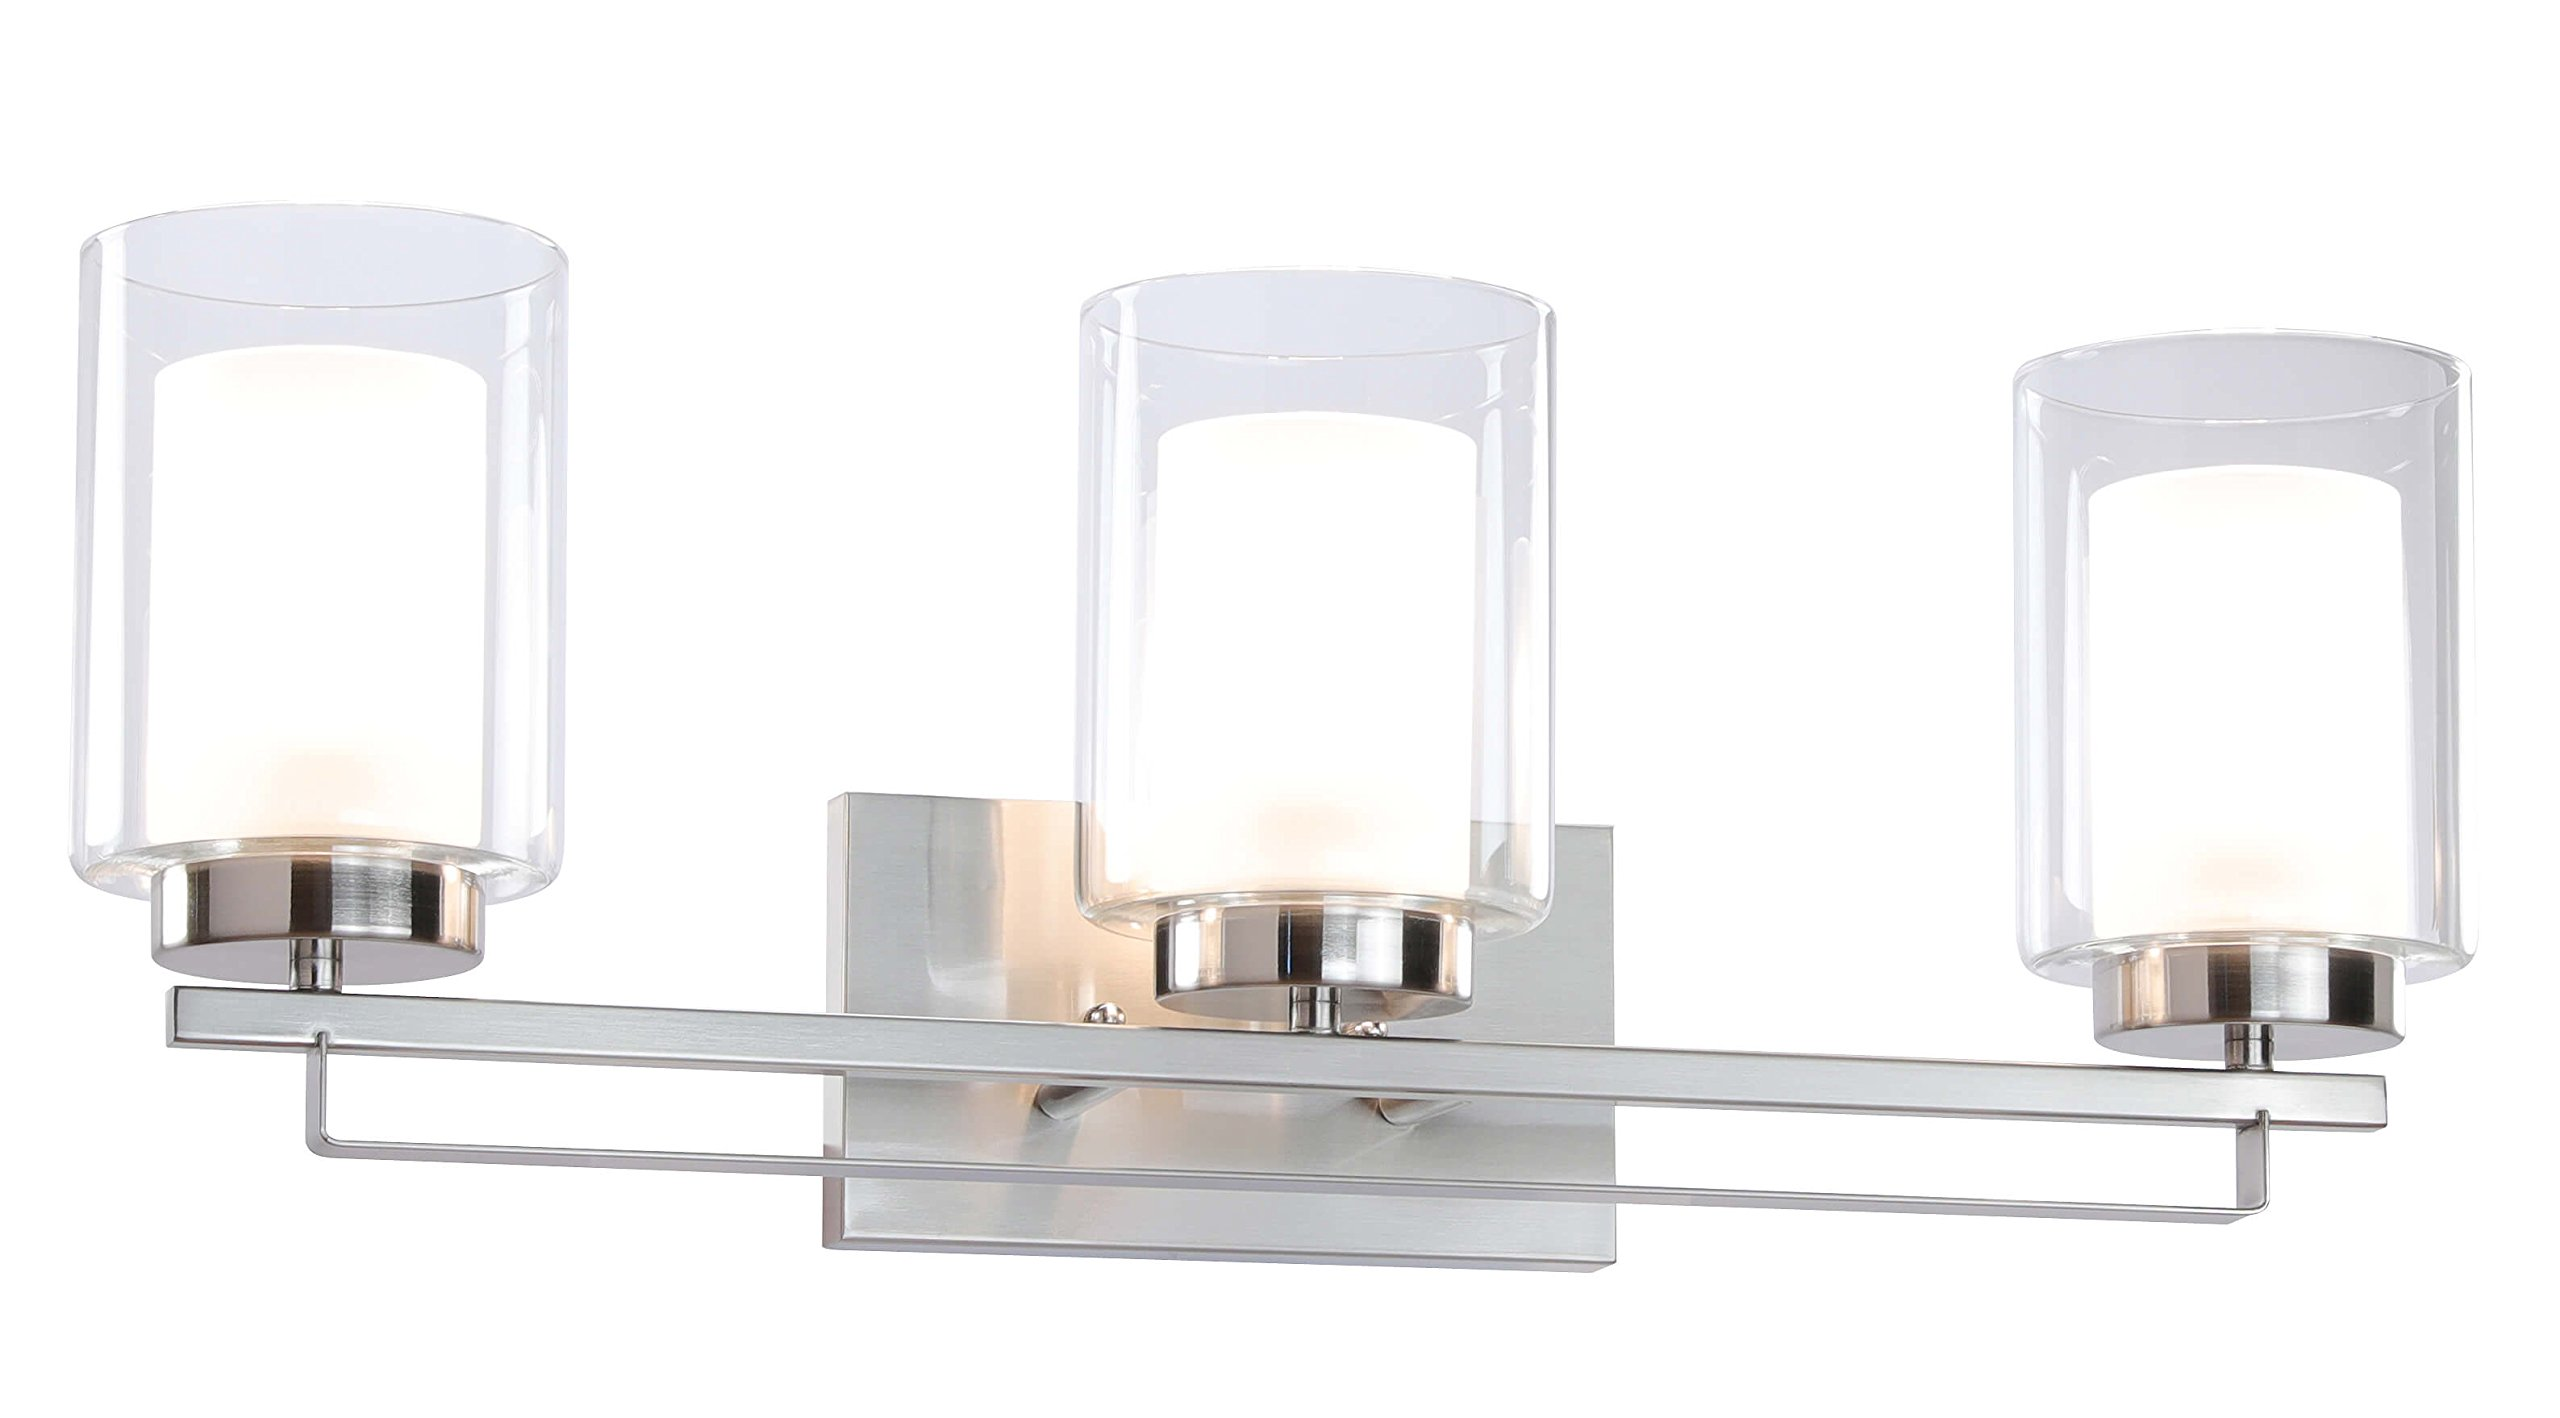 Wall Light 3 Light Bathroom Vanity Lighting with Dual Glass Shade in Brushed Nickel Indoor Modern Wall Mount Light for Bathroom & Kitchen XiNBEi-Lighting XB-W1195-3-BN